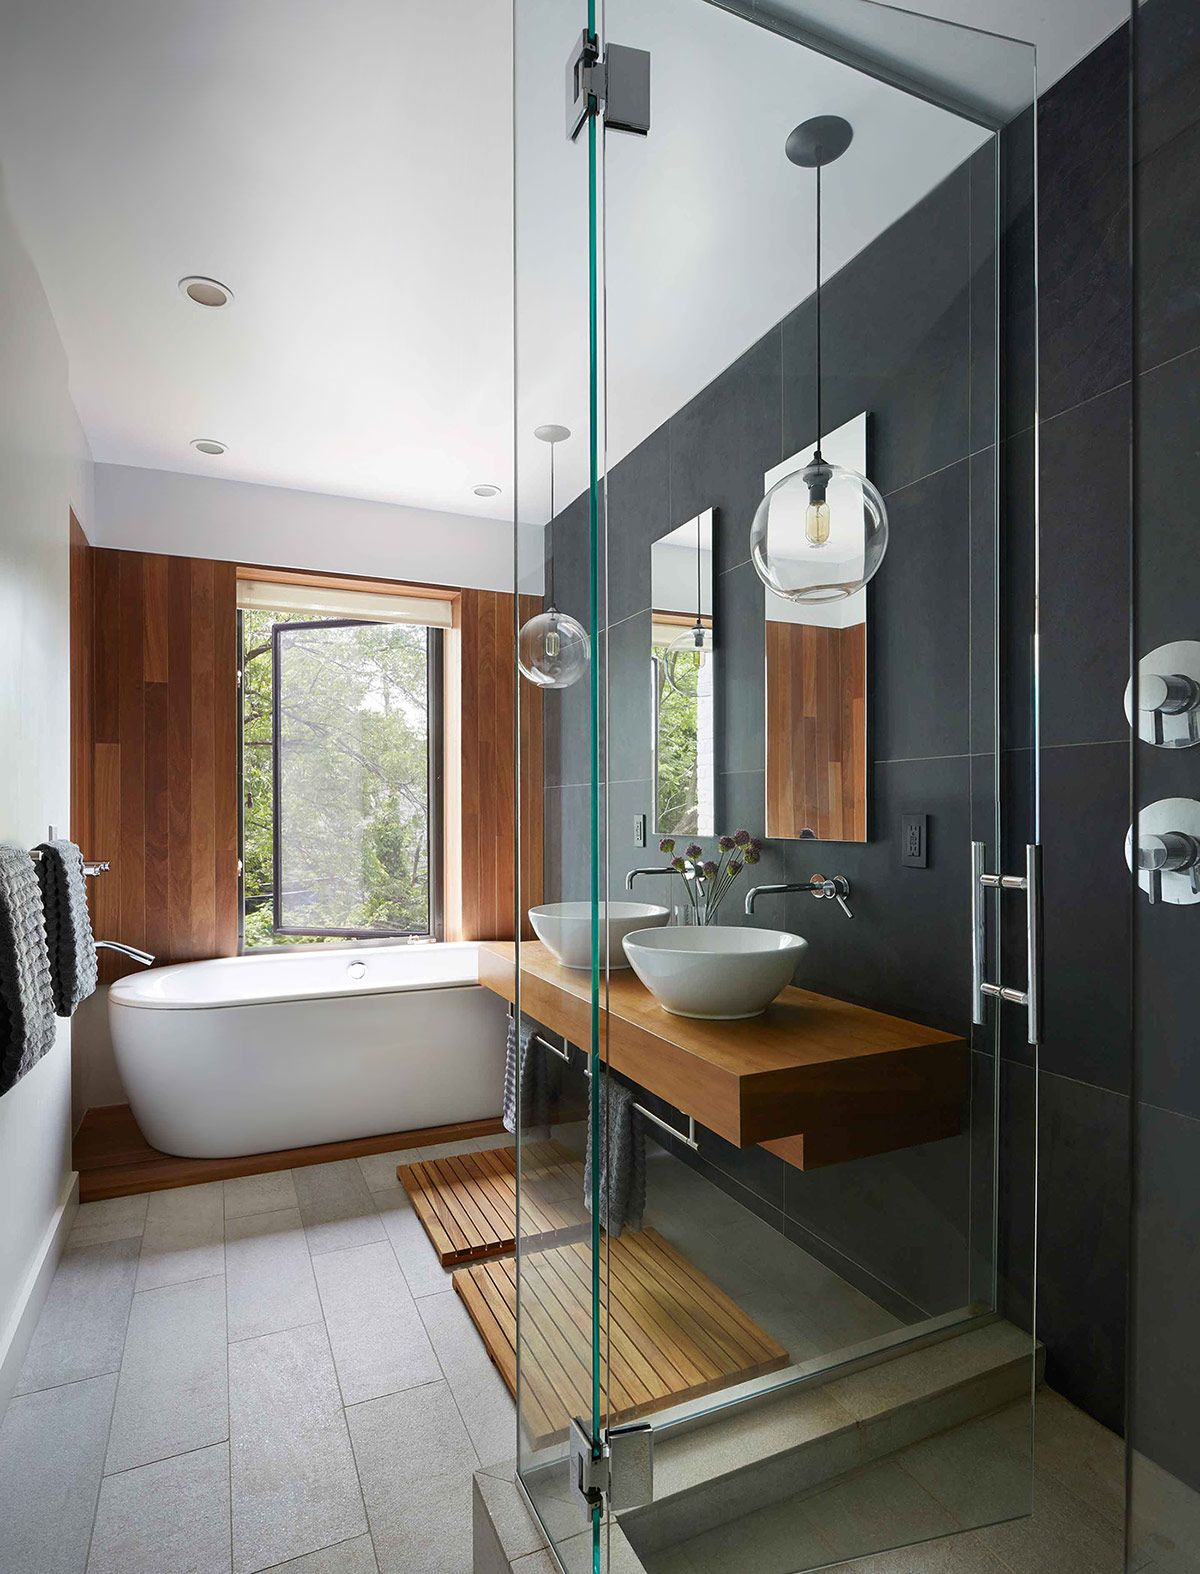 House dark color timeless bathroom design also home style pinterest